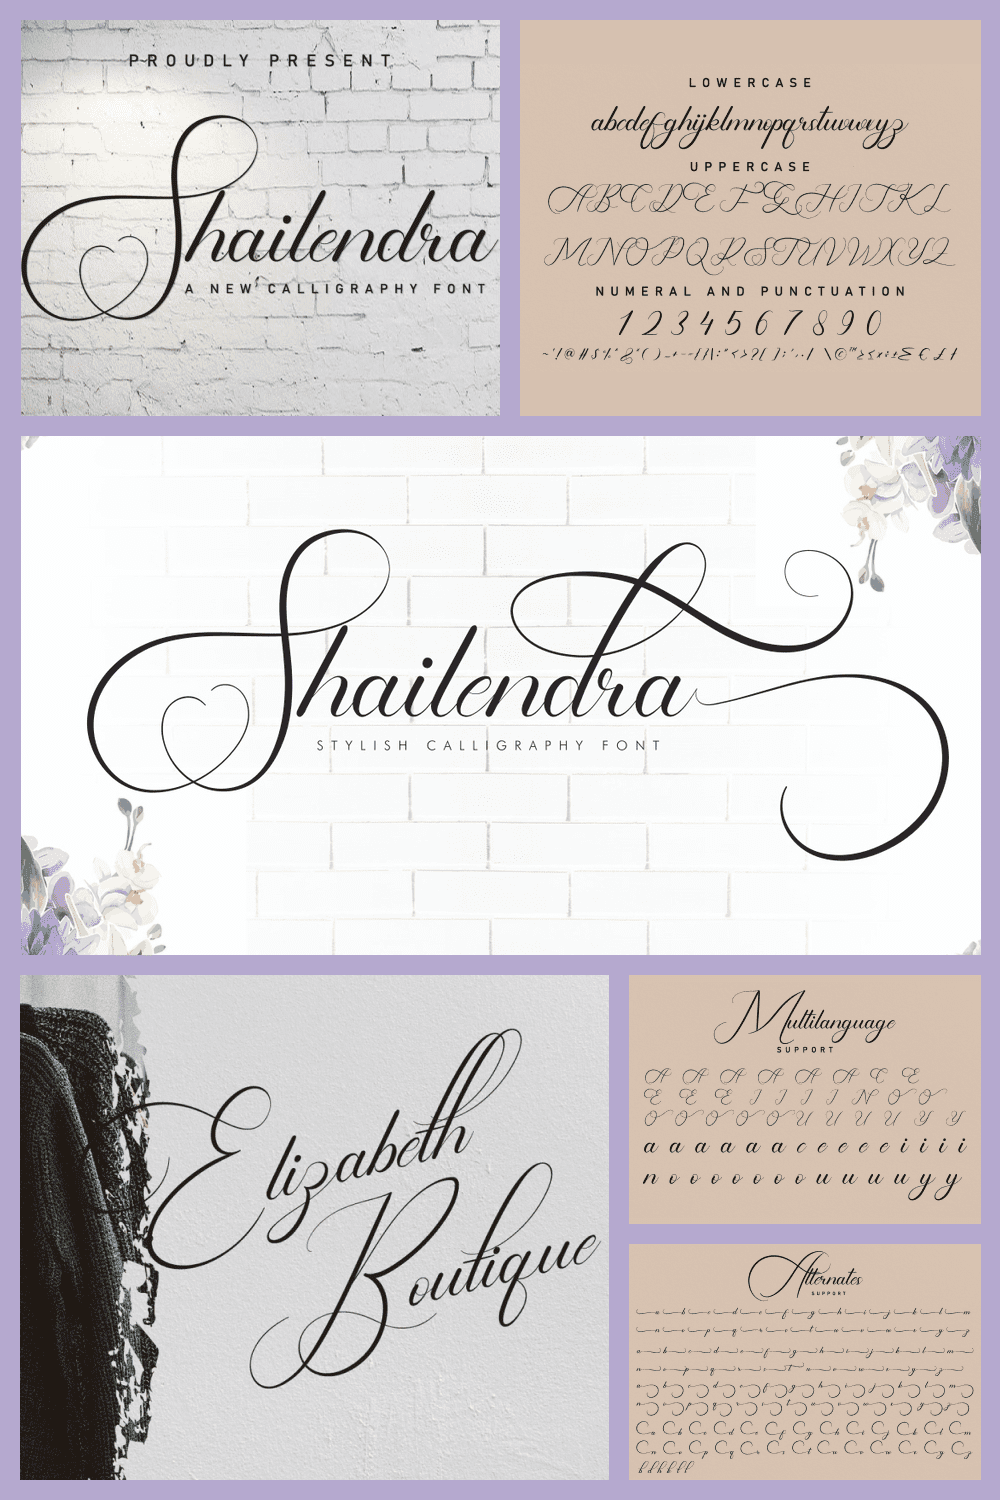 Such a delicate and cute swirl font.